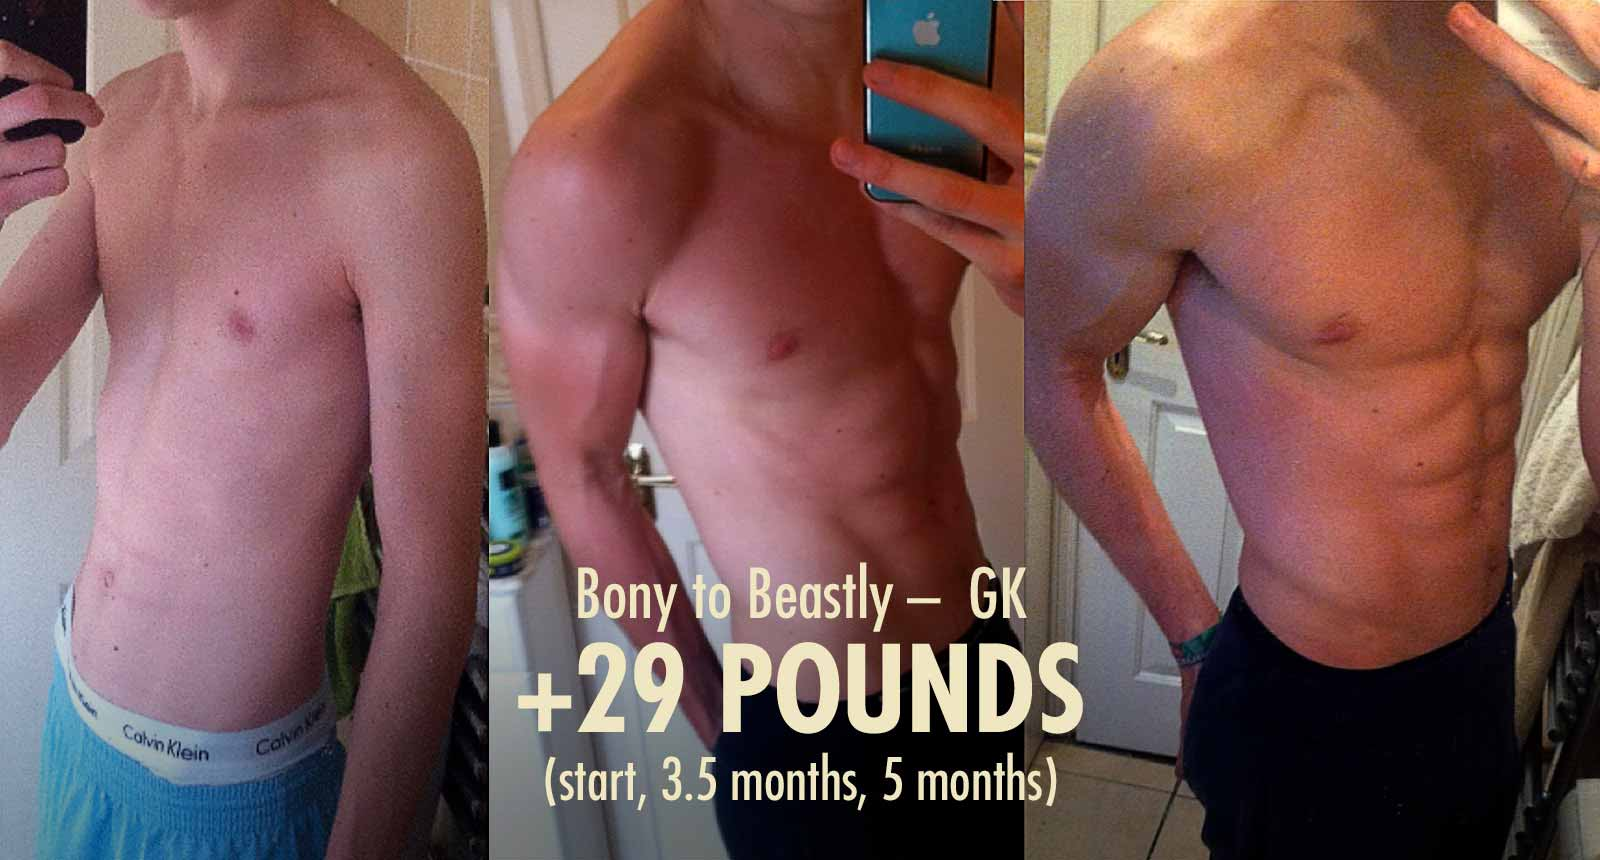 Before and after photo showing the results of gaining muscle without using intermittent fasting.